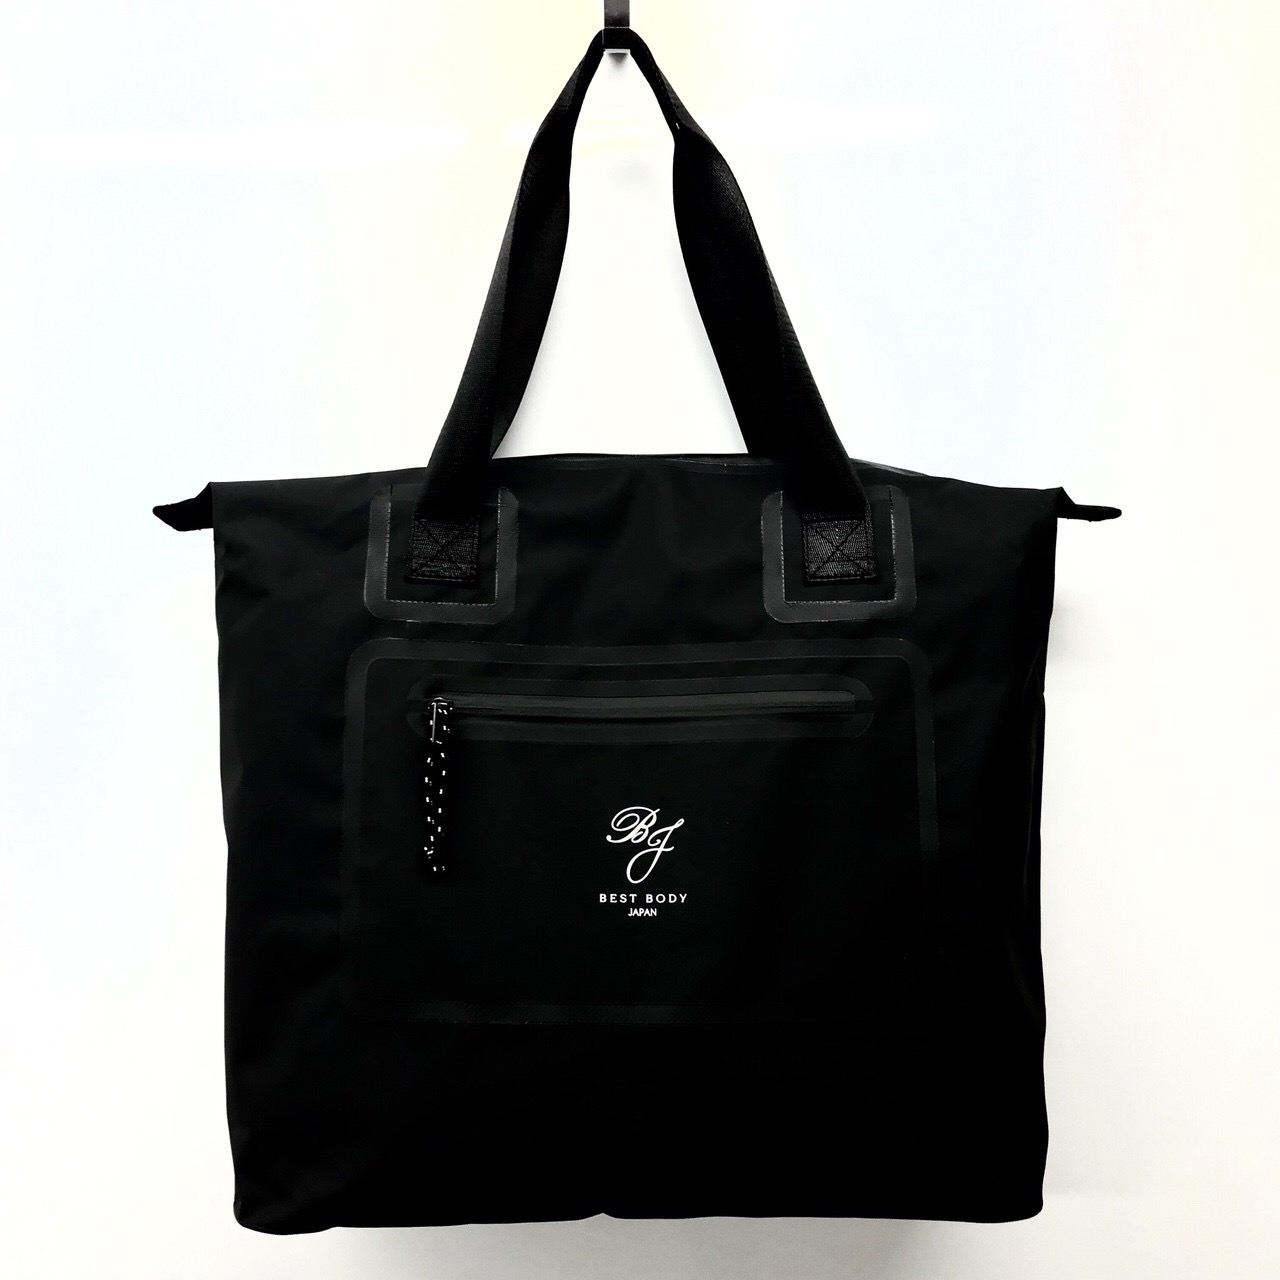 BEST BODY JAPAN BAG